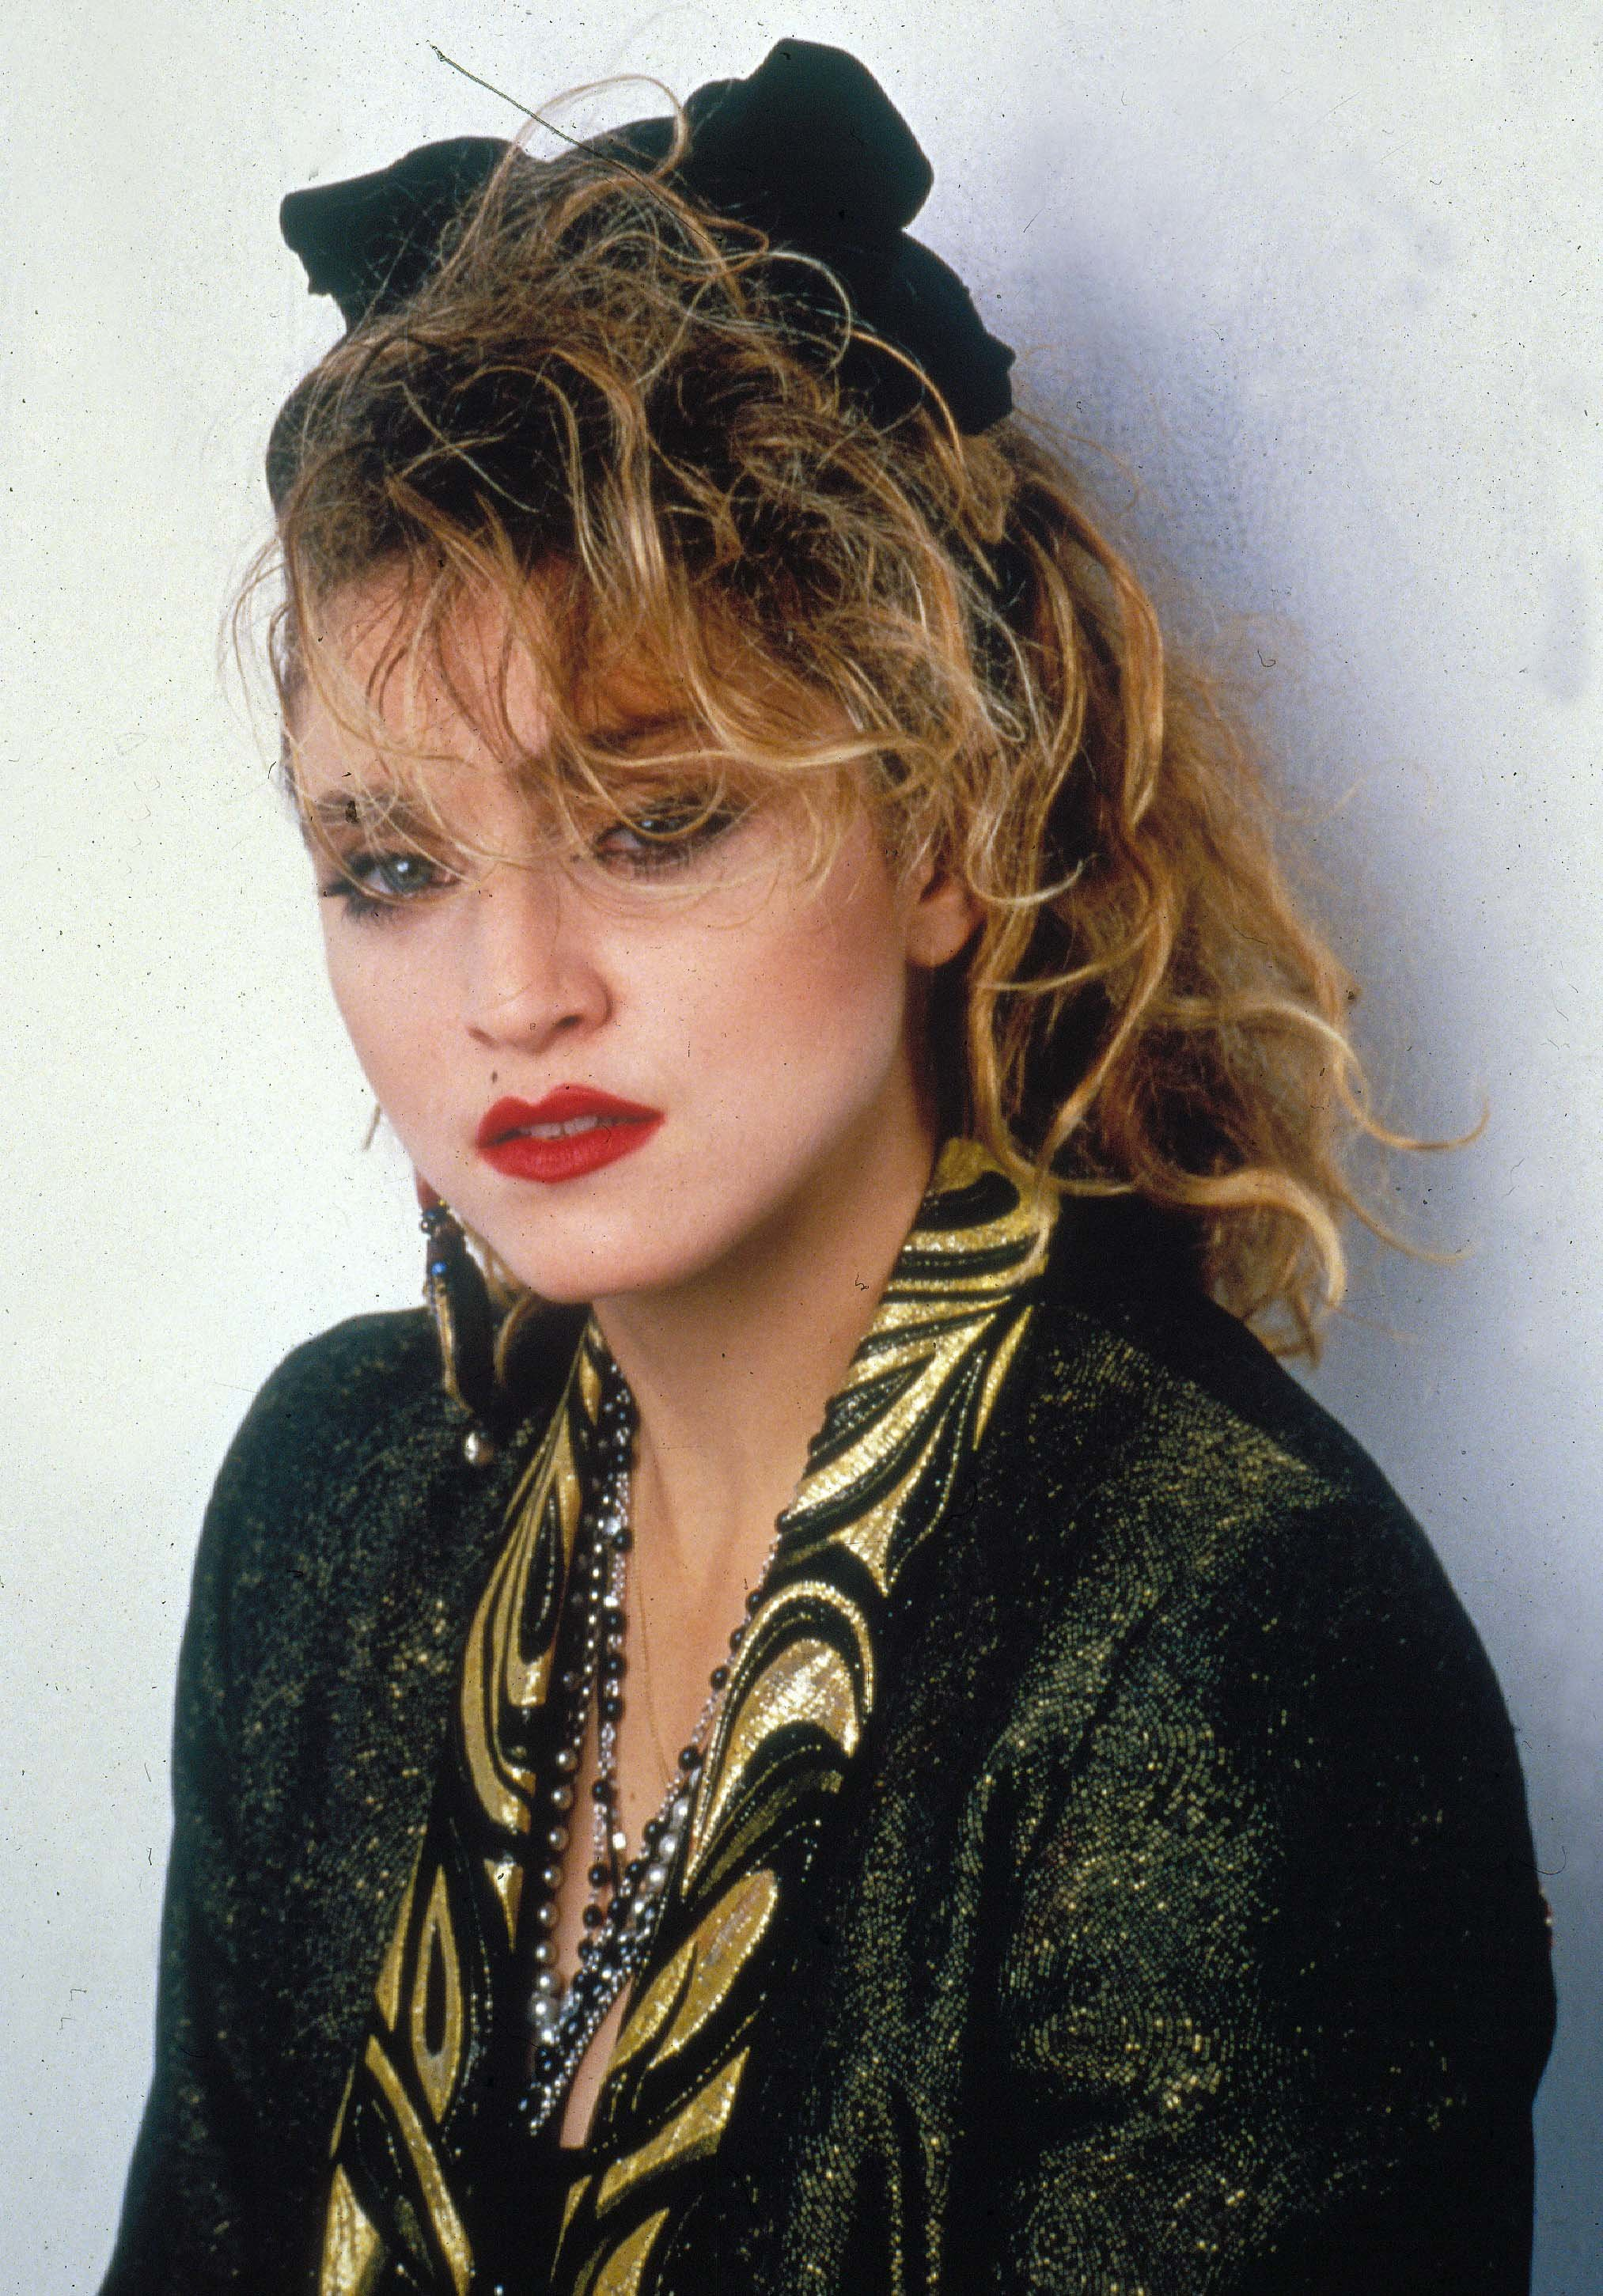 Free 23 Epic 1980S Hairstyles Making A Huge Come Back All Wallpaper